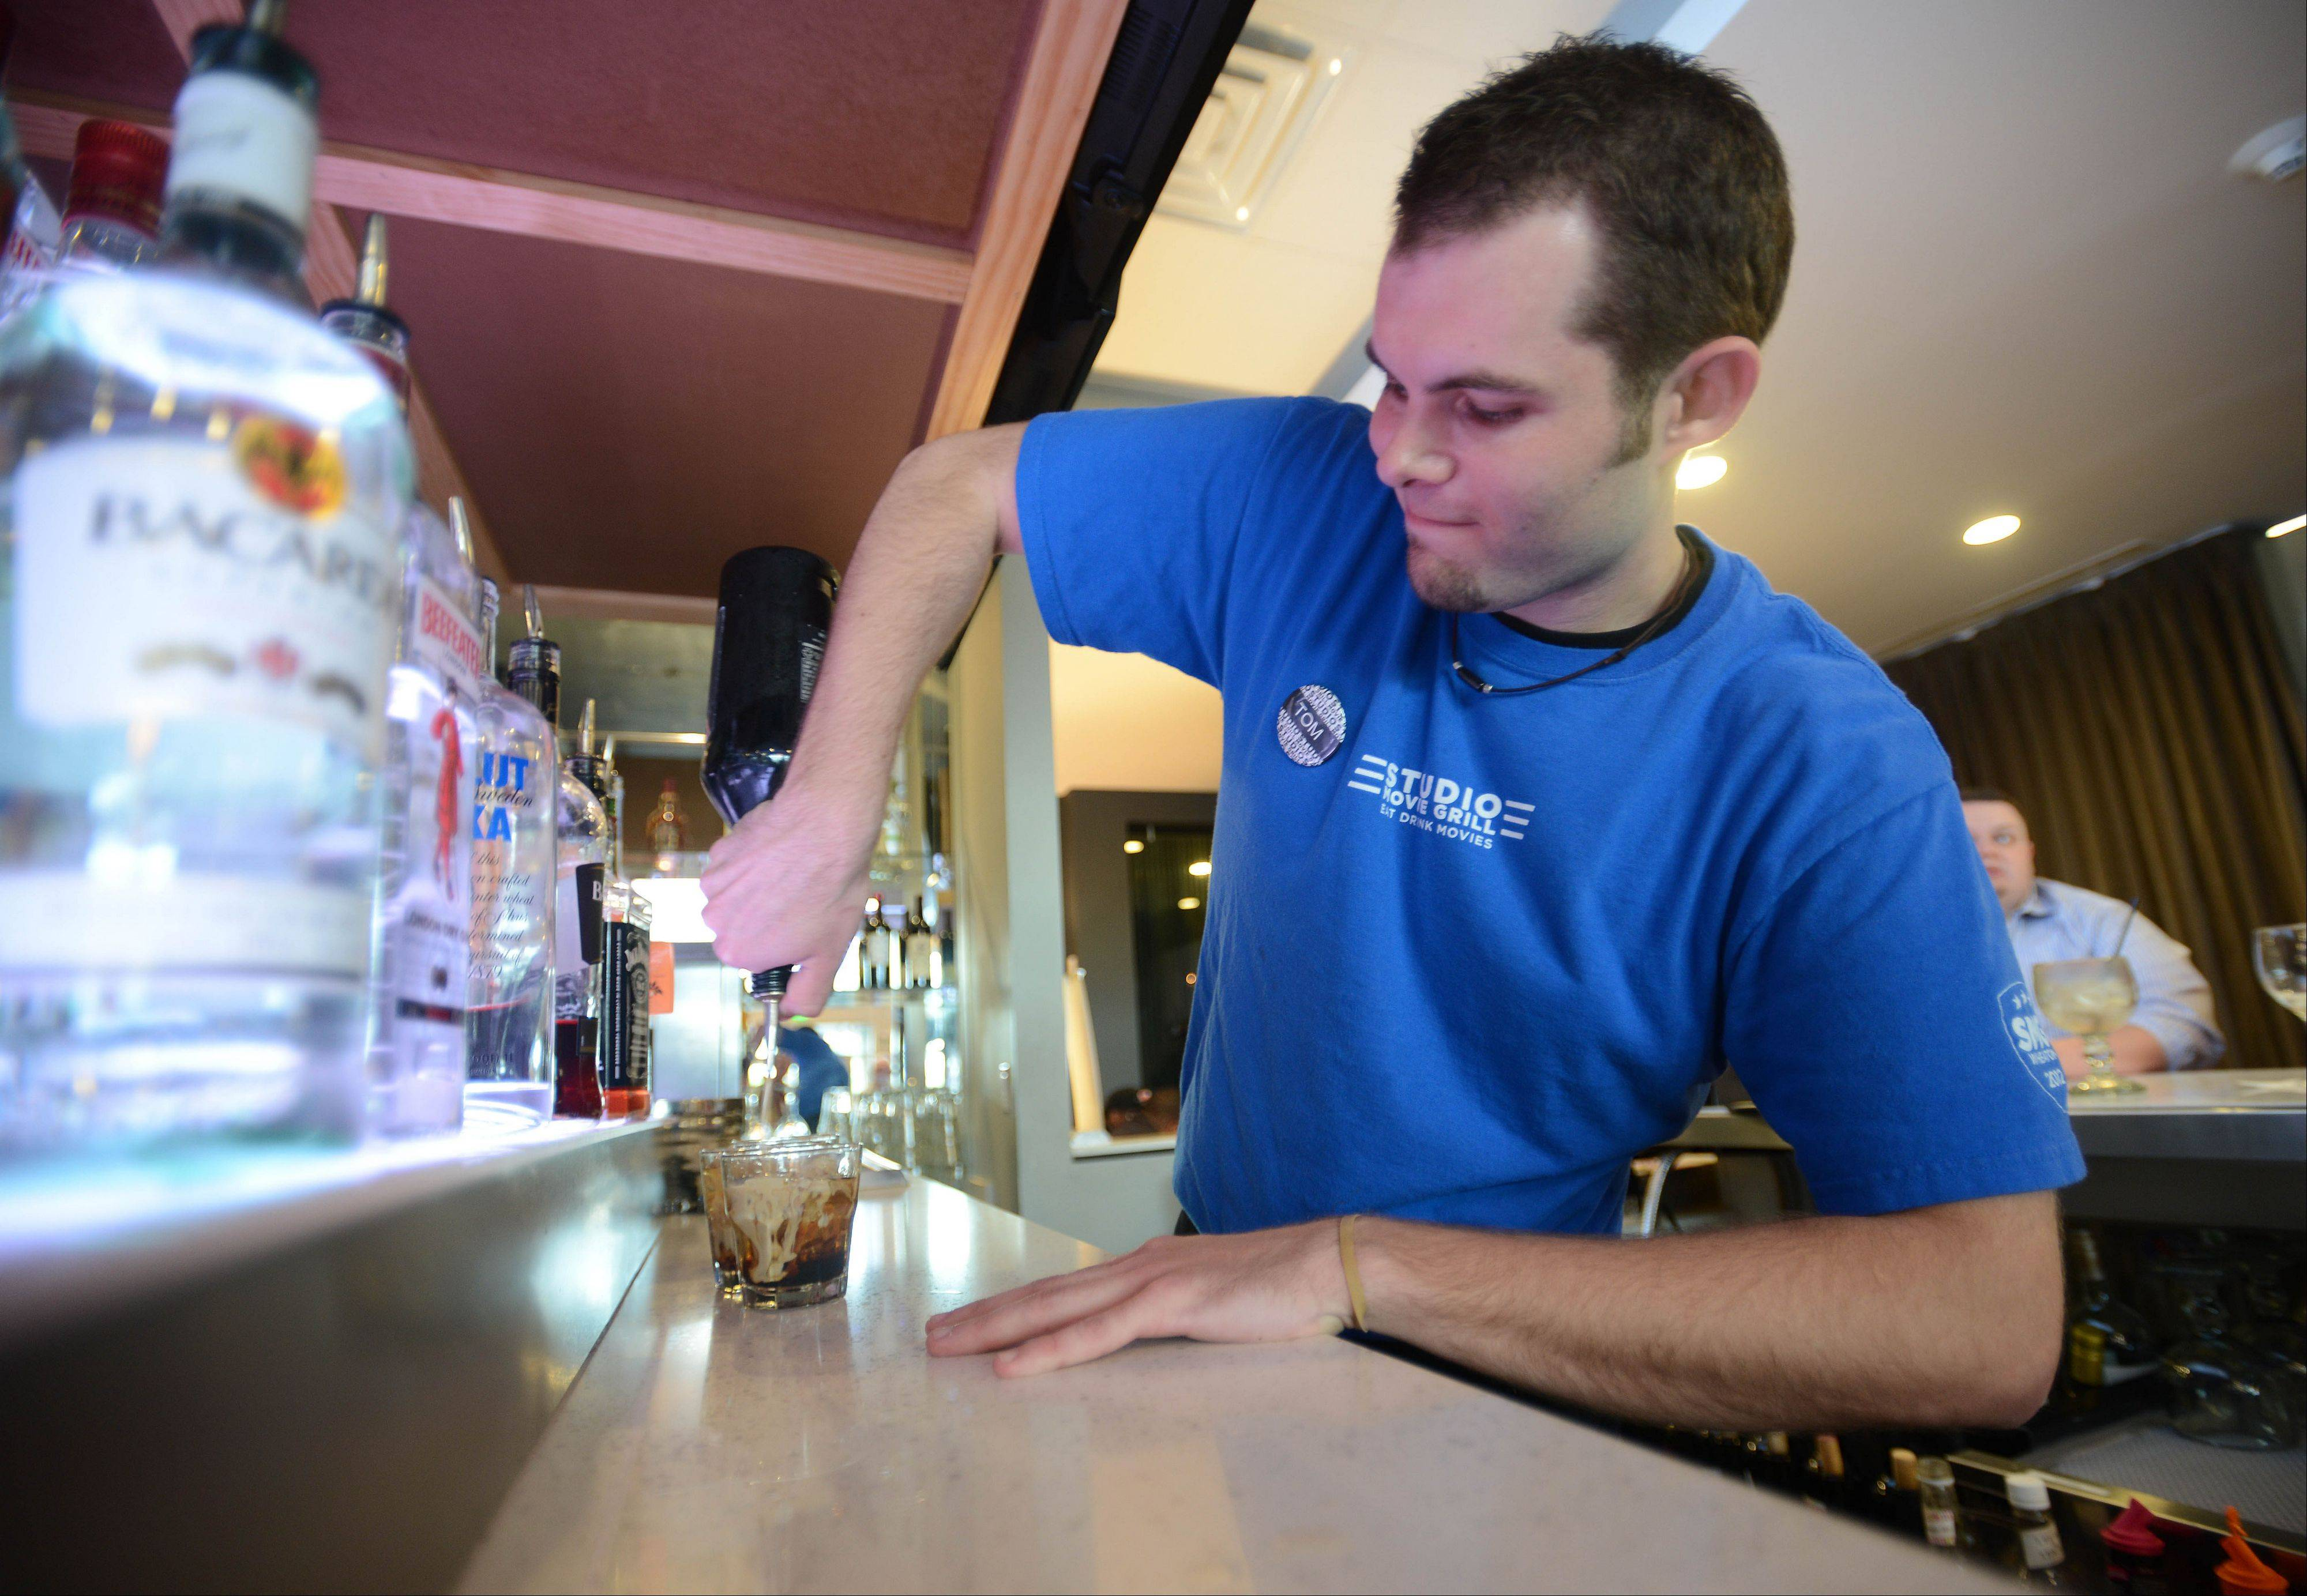 Thomas Sweeney pours a drink at Studio Movie Grill.